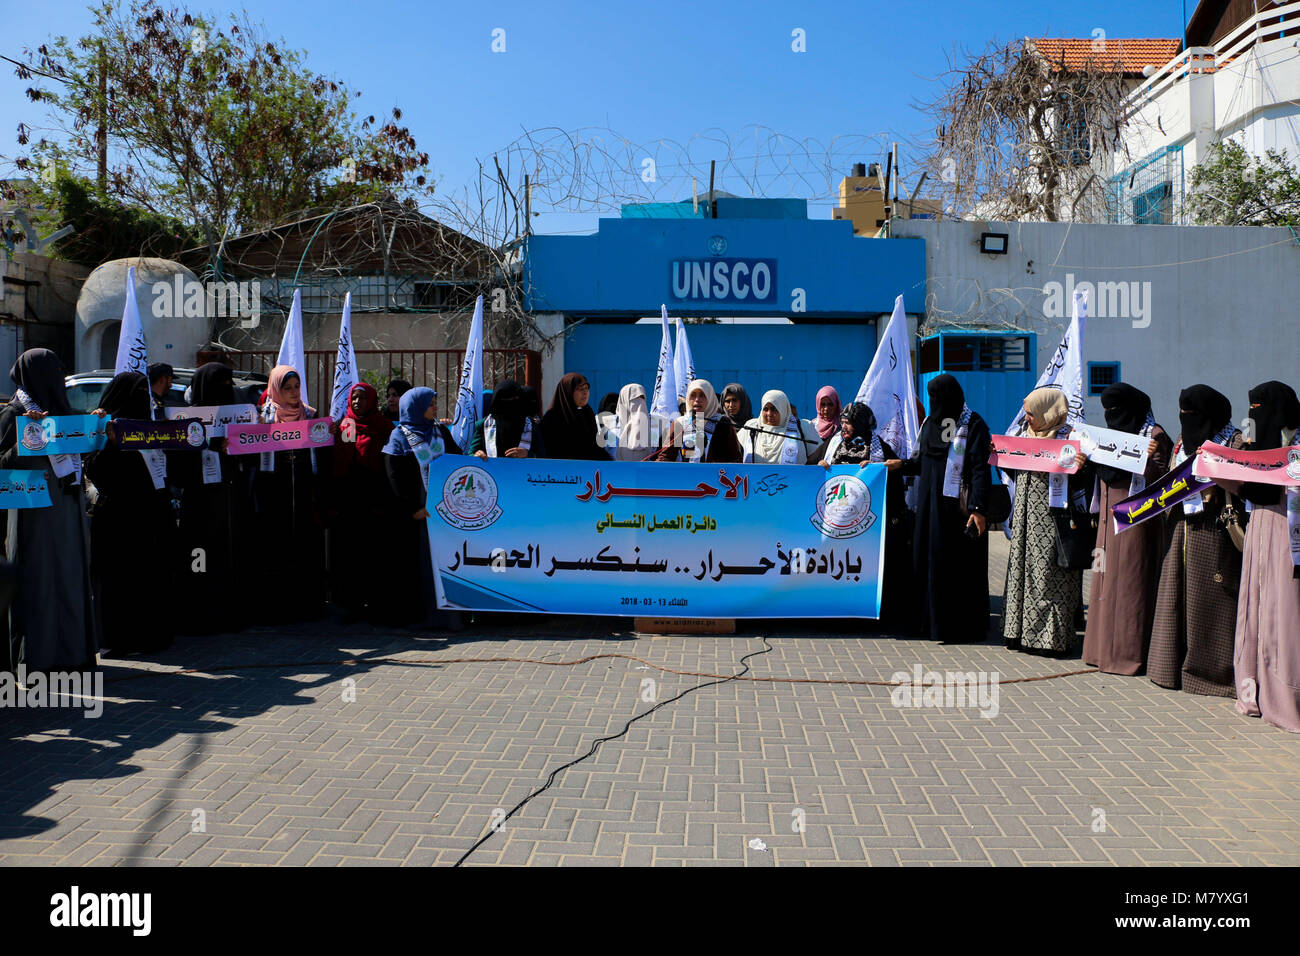 March 13, 2018 - The Palestinian Freedom Movement calls for the end of the siege on Gaza..The Women's Work Department - Stock Image